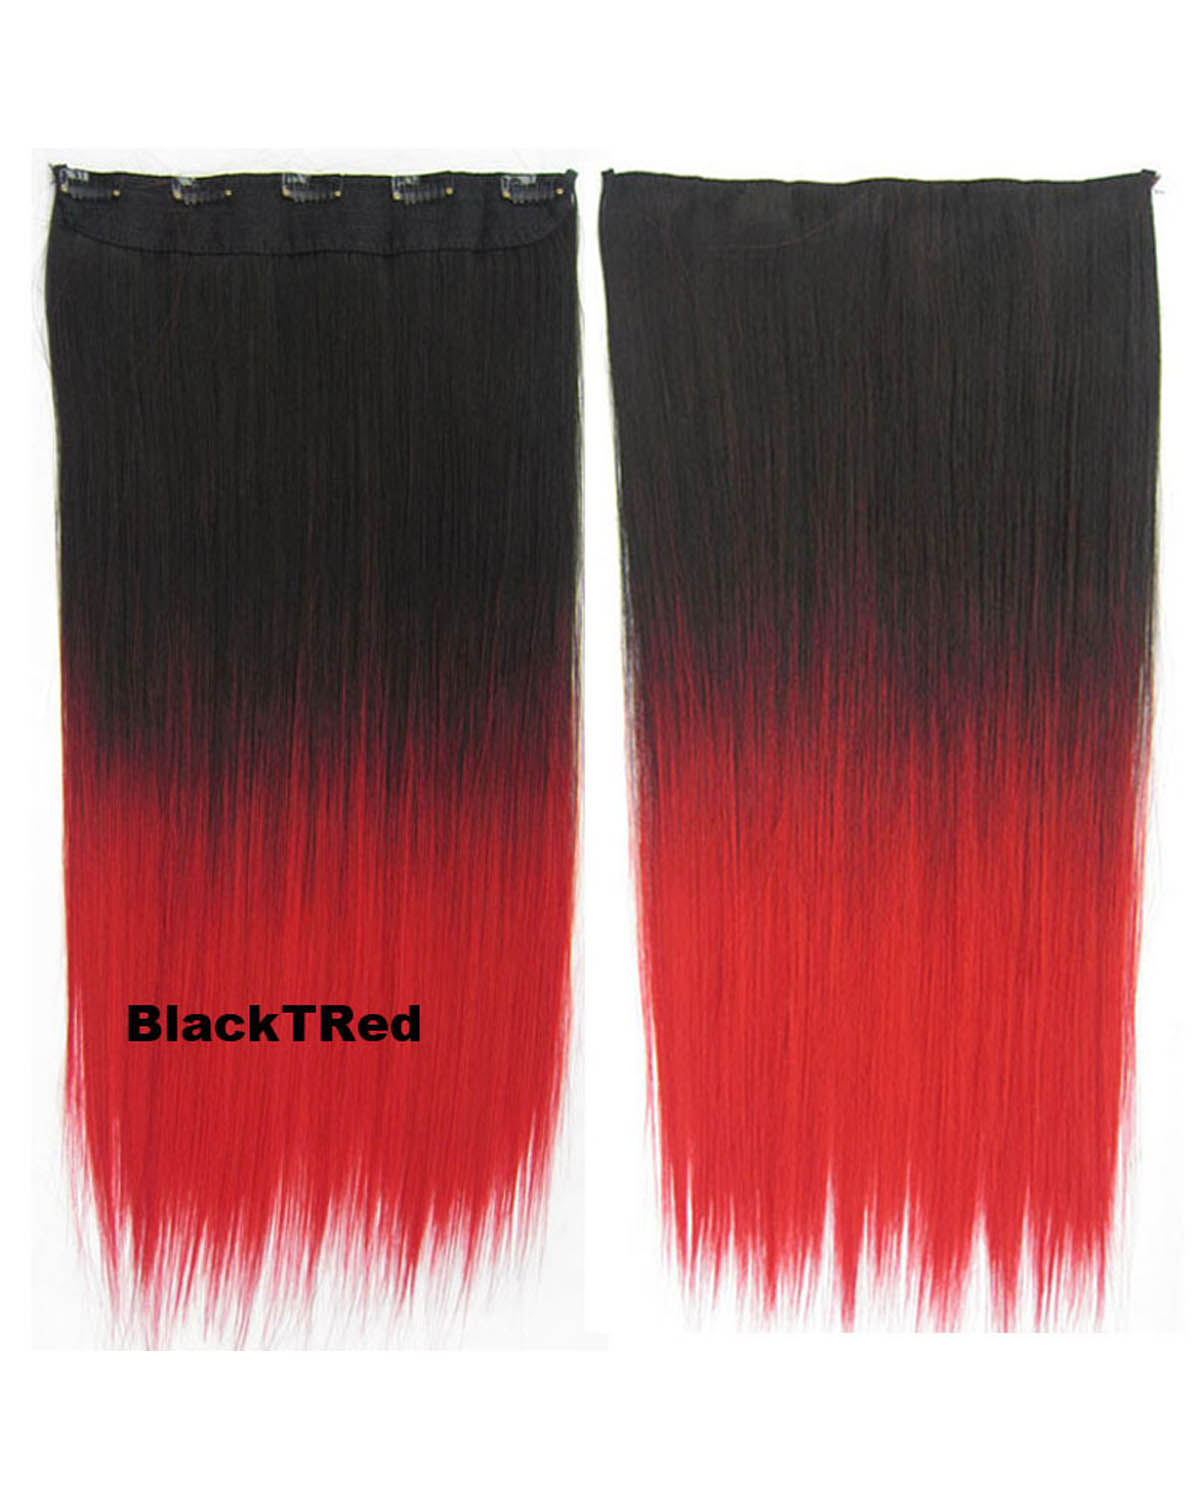 24 Inch Female Popular and Salable Long Straight One Piece 5 Clips Clip in Synthetic Hair Extension Ombre  BlackTRed